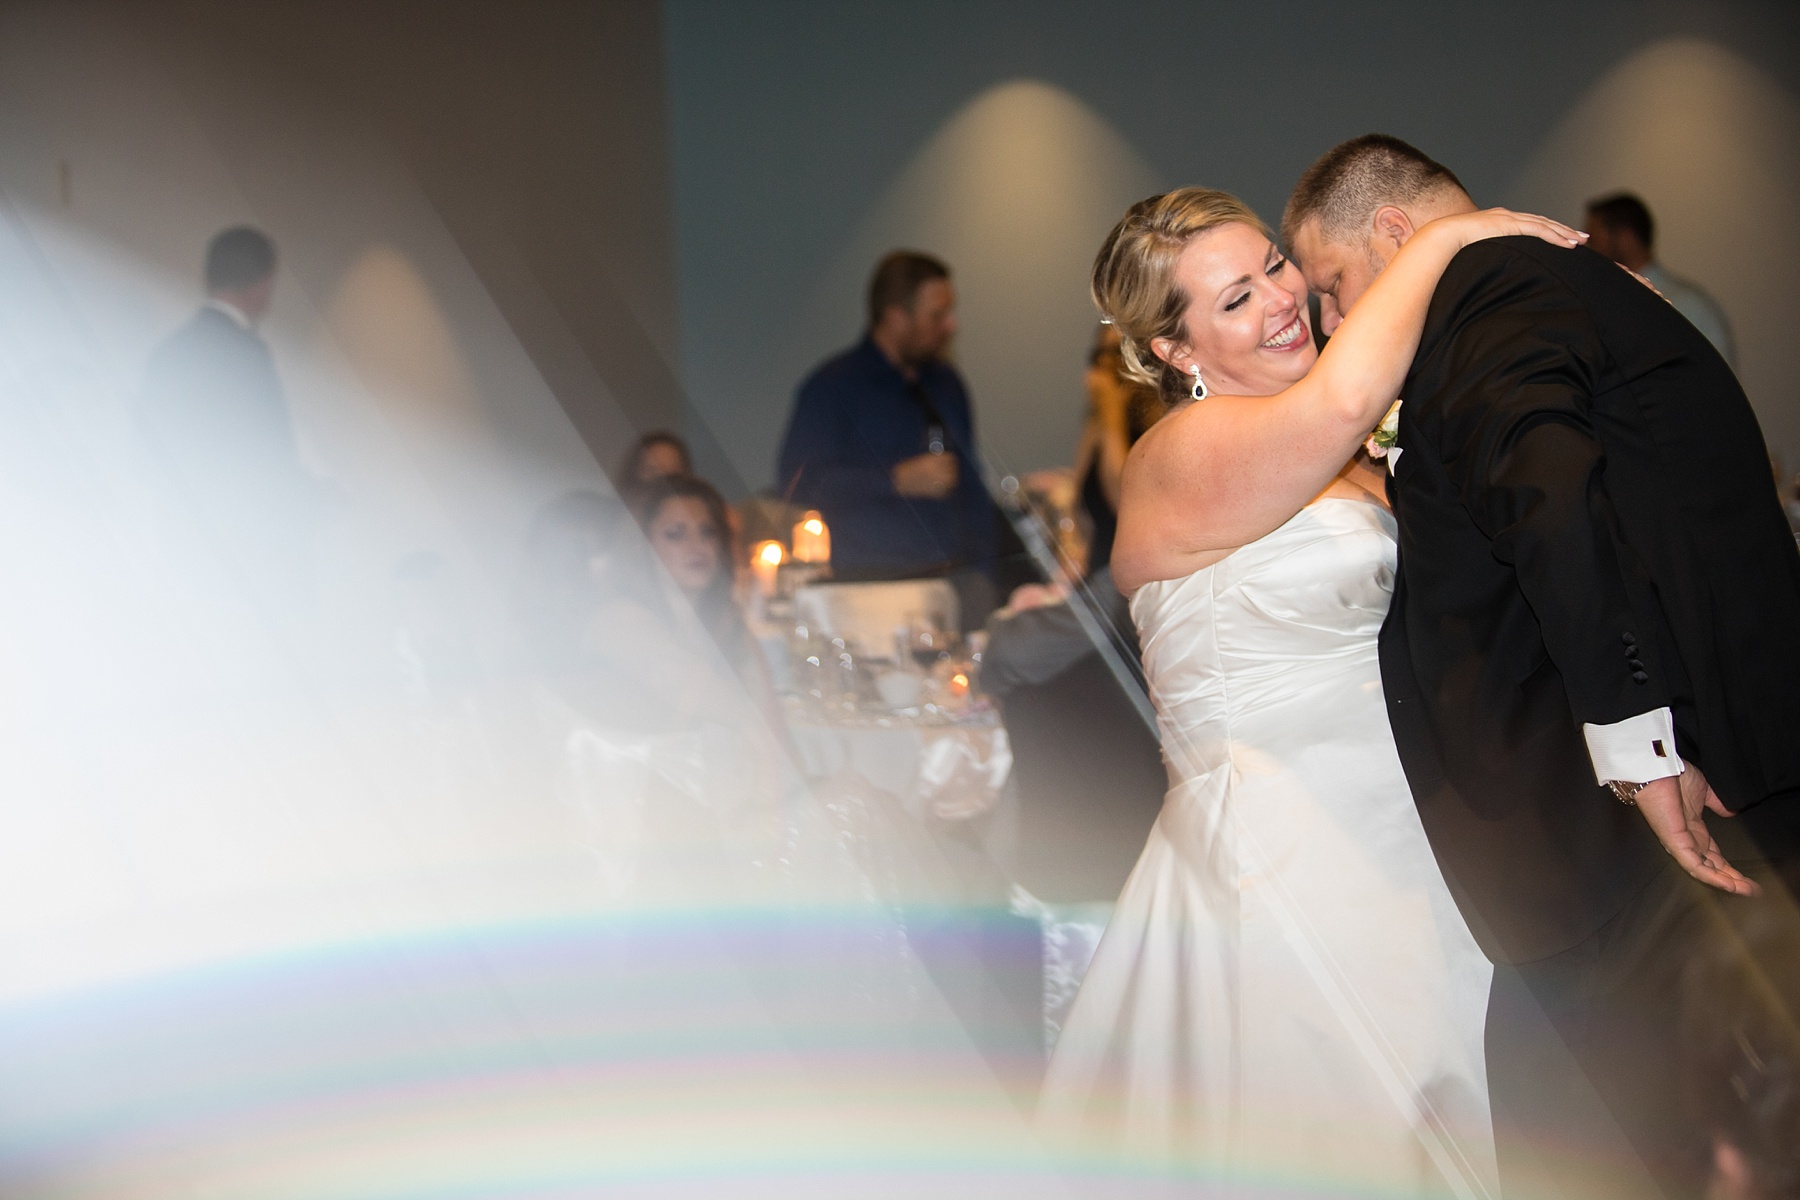 Brandon_Shafer_Photography_Brad_Sarah_Downtown_Grand_Rapids_Wedding_0055.jpg